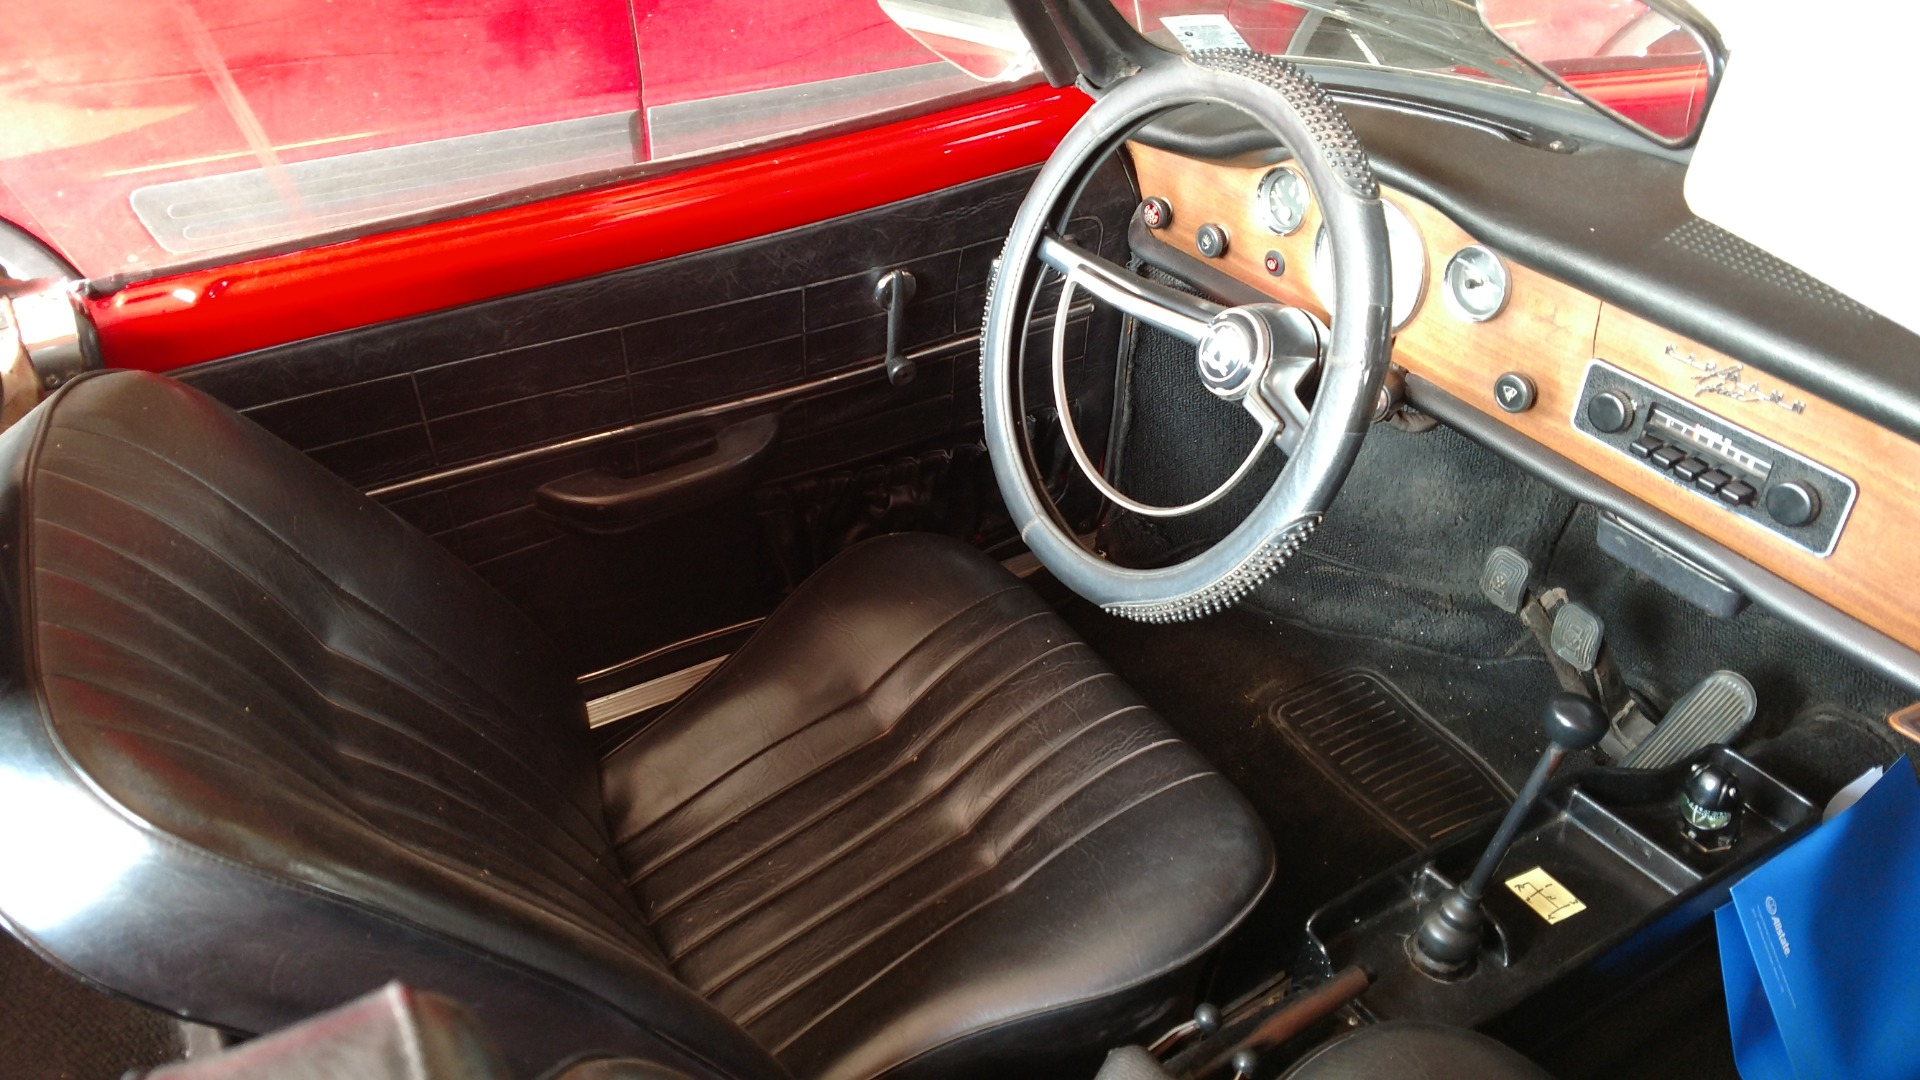 Used 1971 Volkswagen Karmann Ghia -FUN CONVERTIBLE FOR THE OPEN ROAD-WELL KEPT CONDITION- | Mundelein, IL